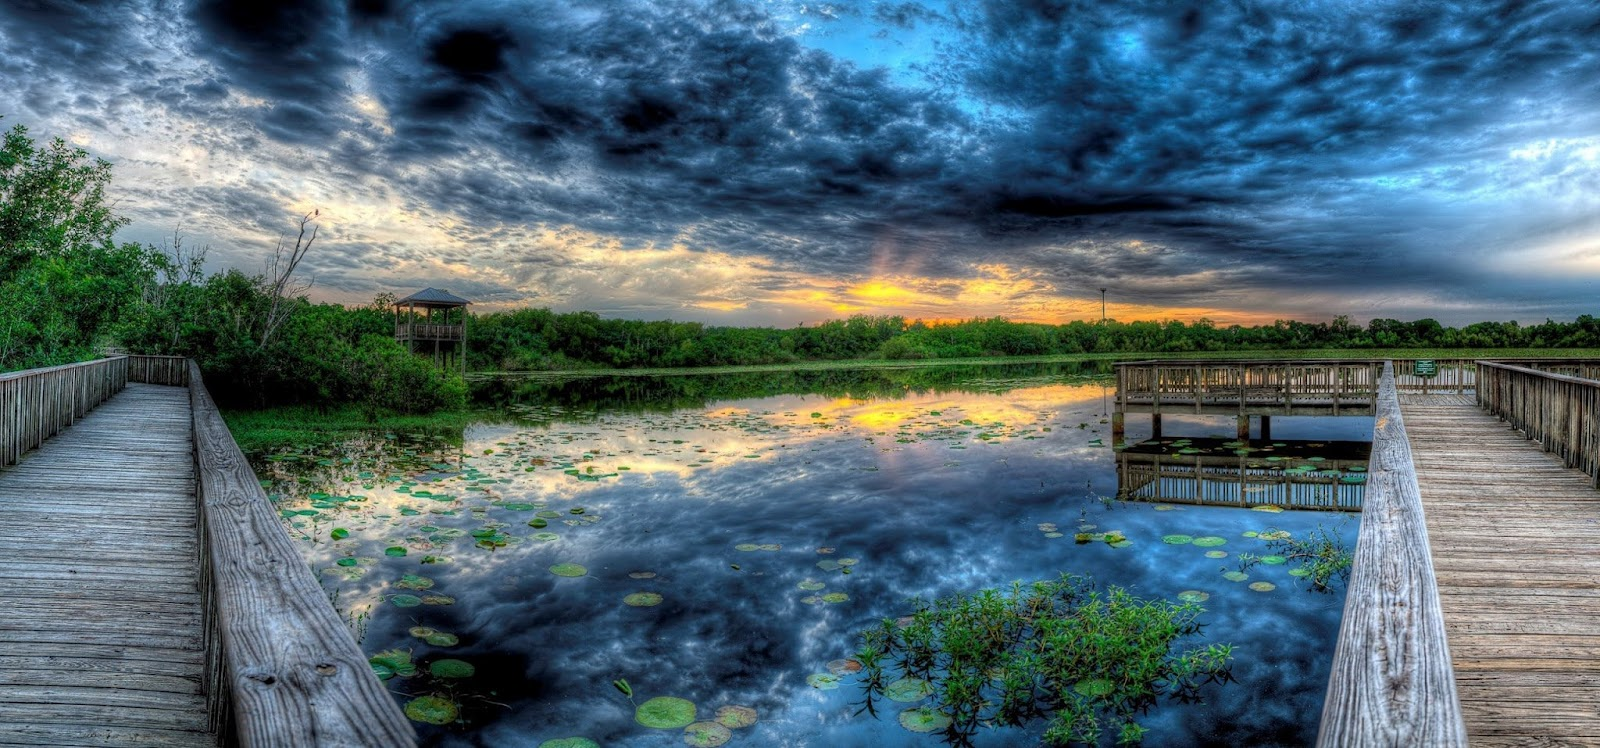 Sunset at White lake in Cullinan Park near Houston and Sugar Land Texas - HDR Panoramic